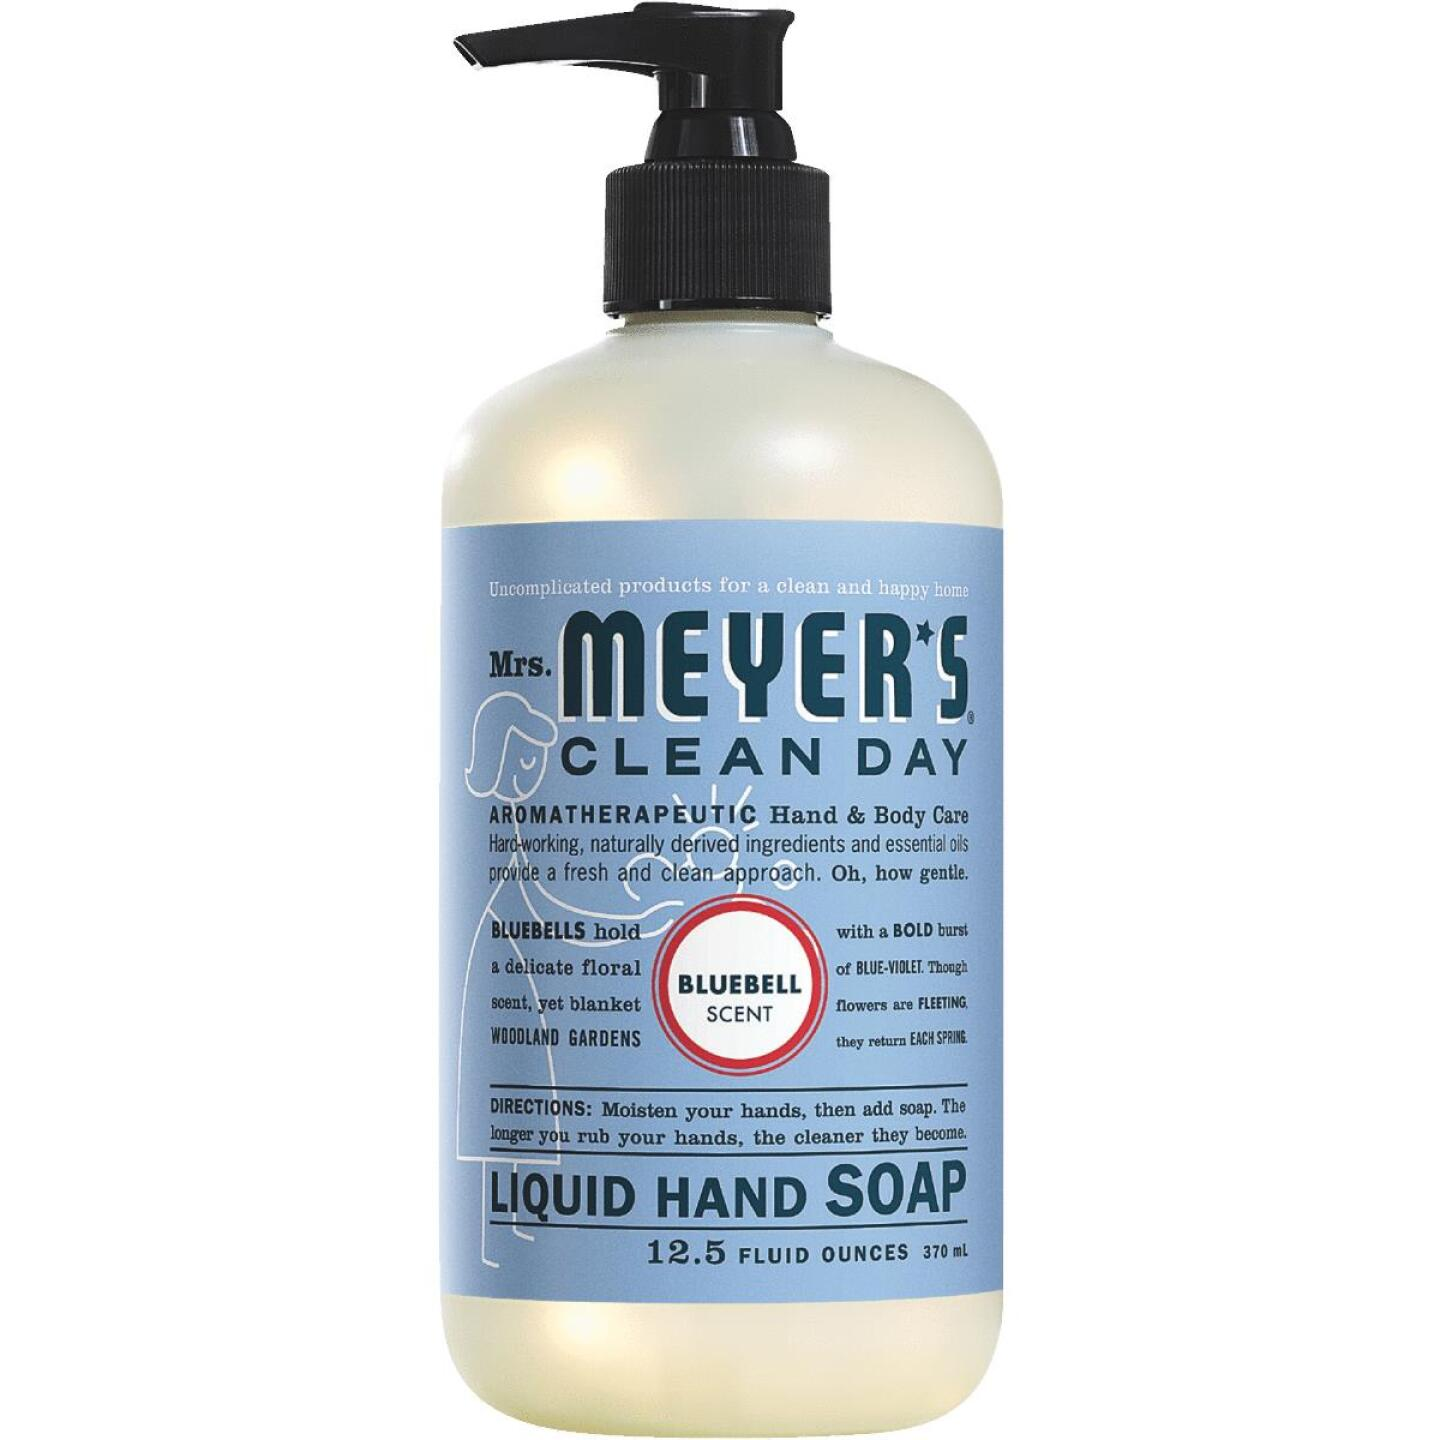 Mrs. Meyer's Clean Day 12.5 Oz. Blue Bell Liquid Hand Soap Image 1